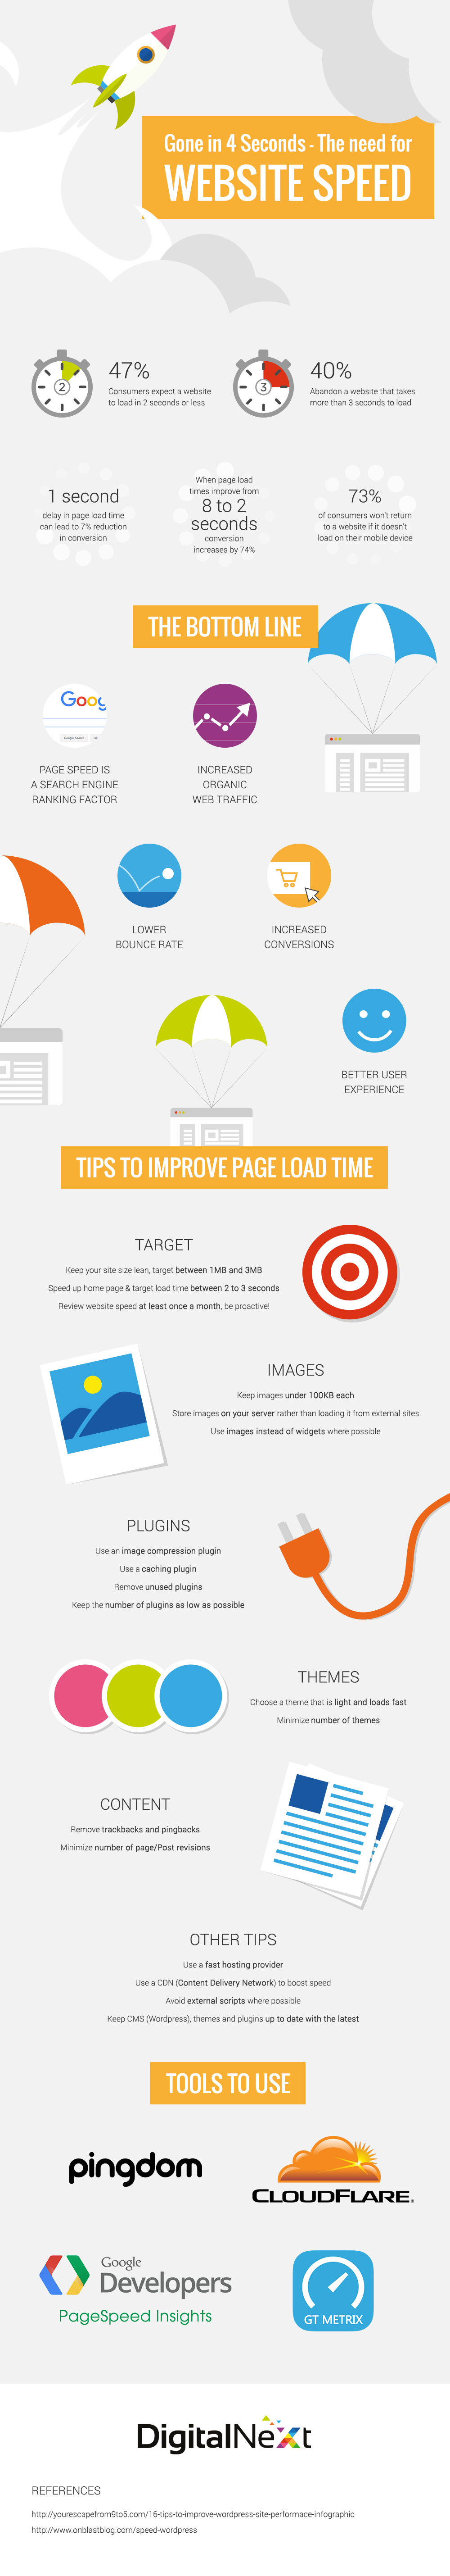 How-to-Improve-Your-Website-Speed-Infographic-image